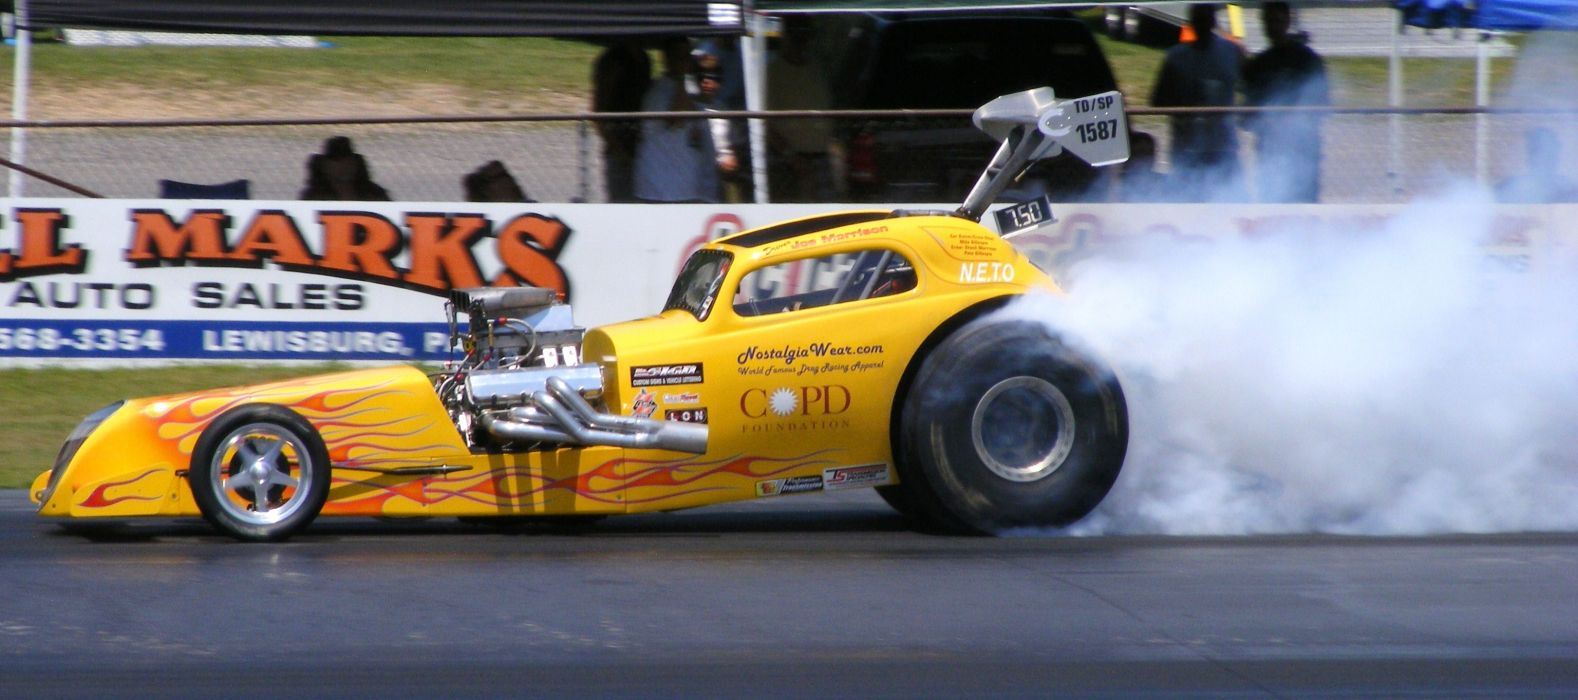 hot rod rods drag race racing dragster   s wallpaper